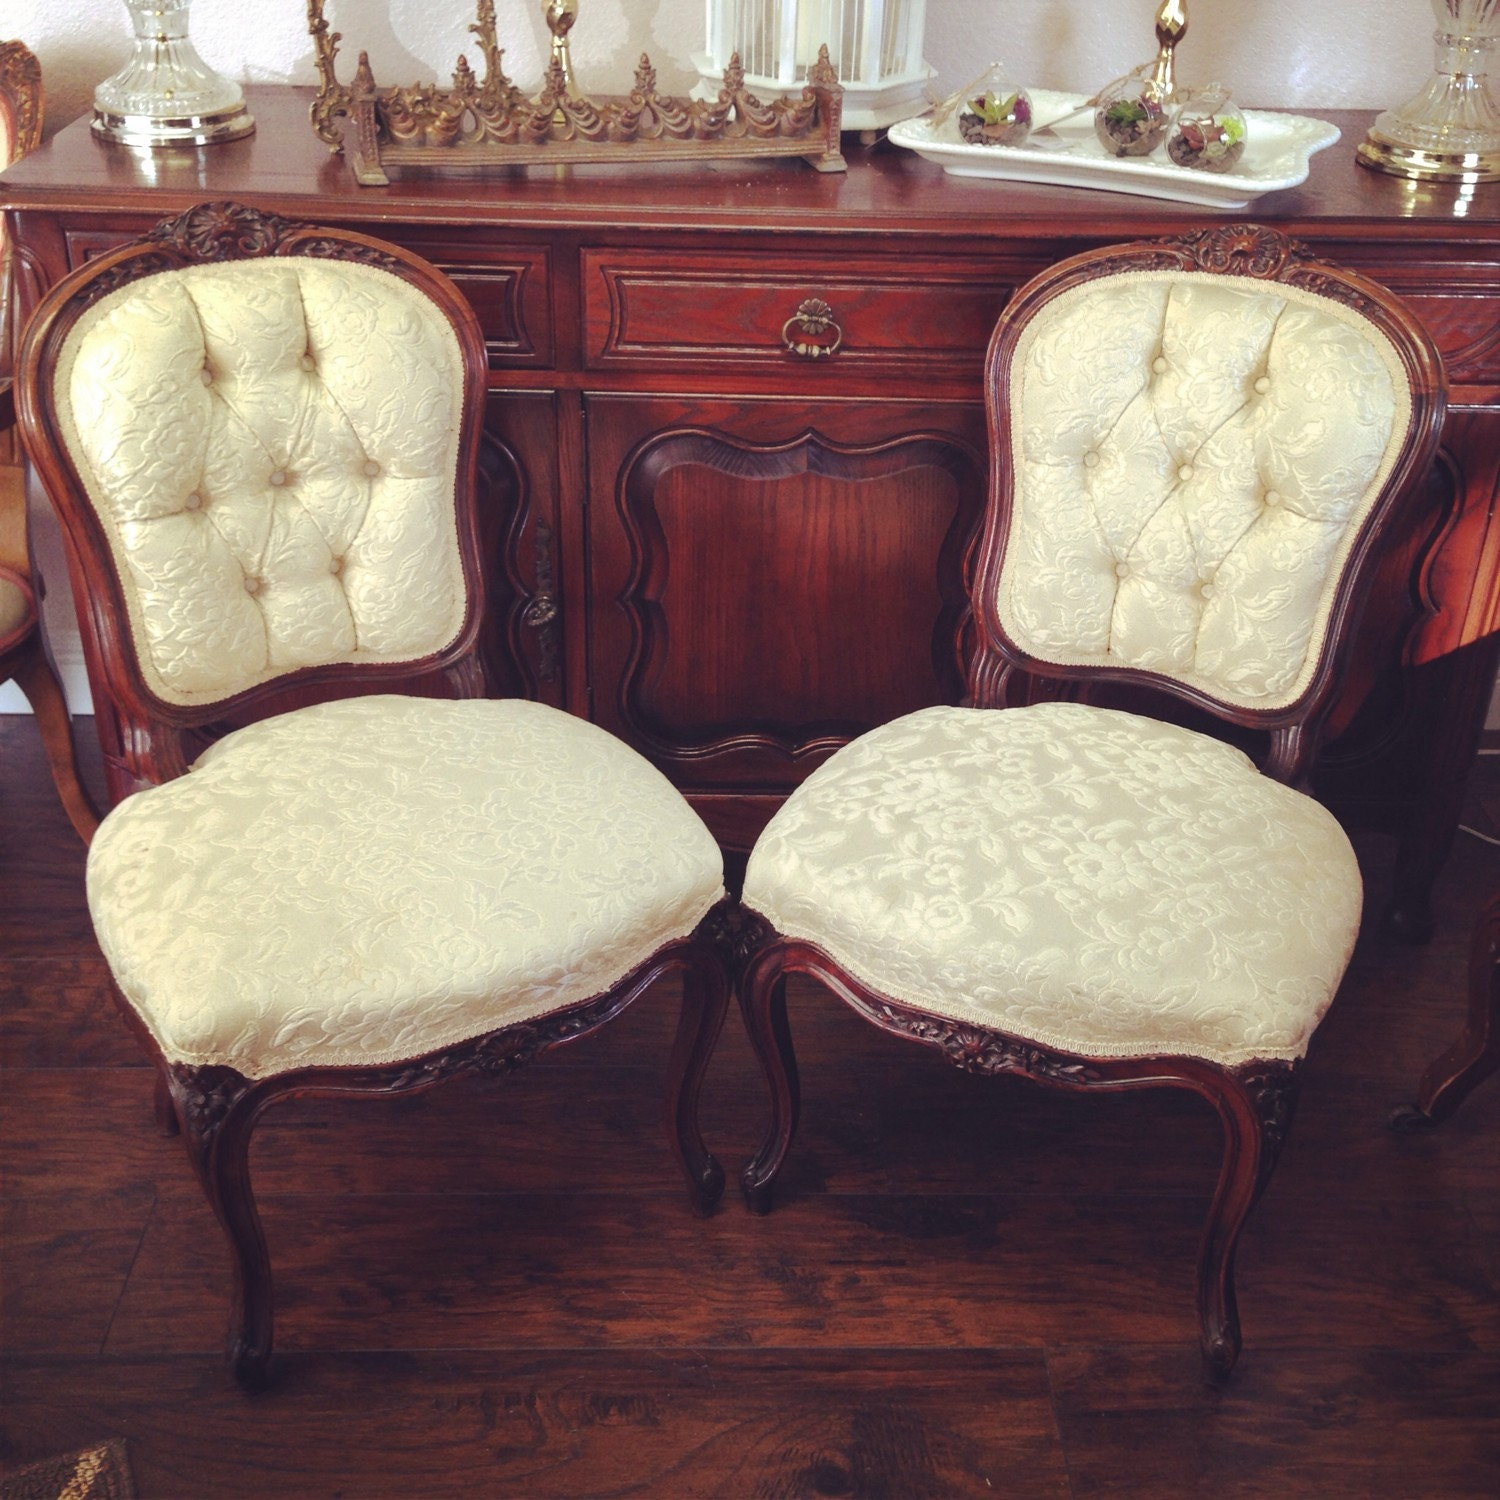 Vintage French Armless Chairs By MadebyTuyen On Etsy